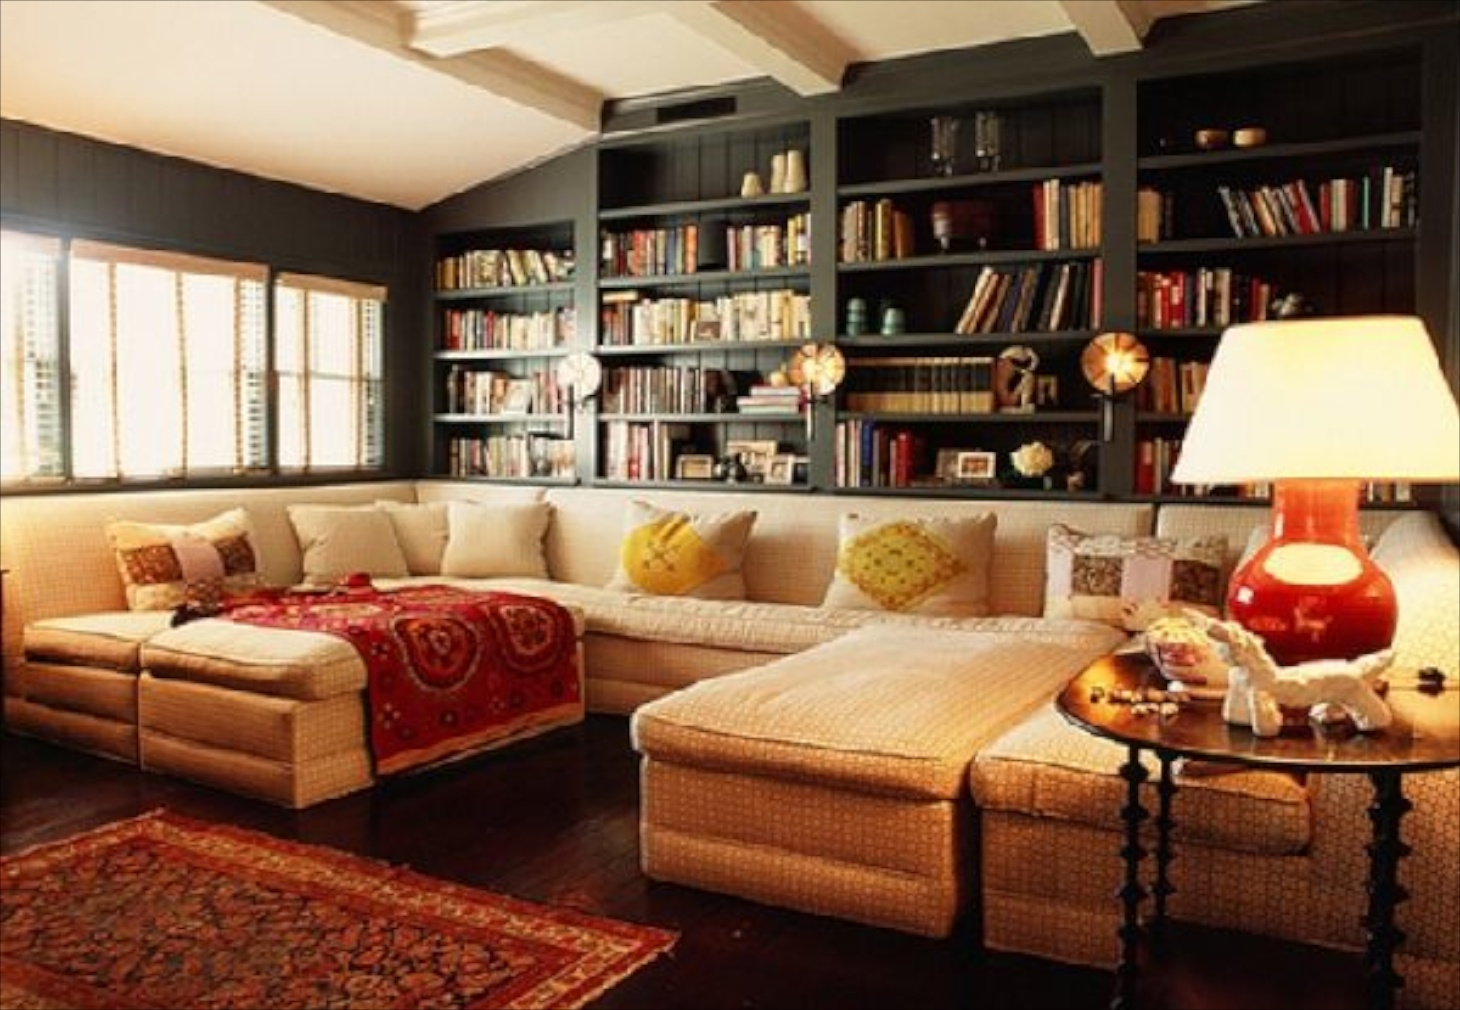 23 sofas and bookcase ideas in cozy living room design Design in living room